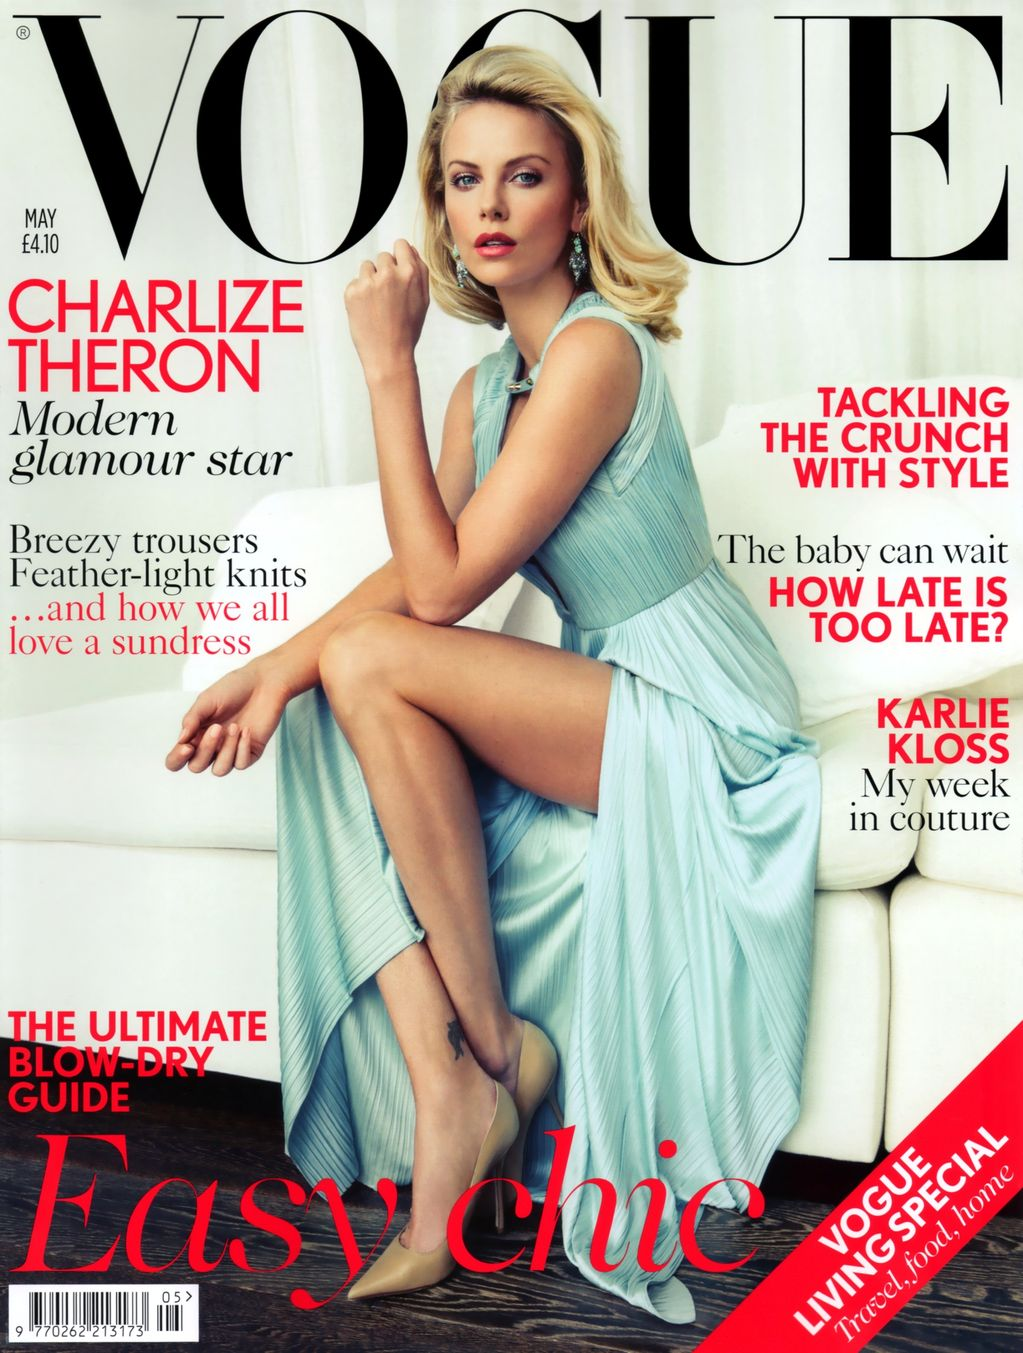 Beautiful Blonde Actress Charlize Theron Modeling For The Cover Of British Vogue Magazine Modeling As One Of The Highest Paid Actresses In The World. Actress Charlize Theron Photographed By Patrick Demarchelier.